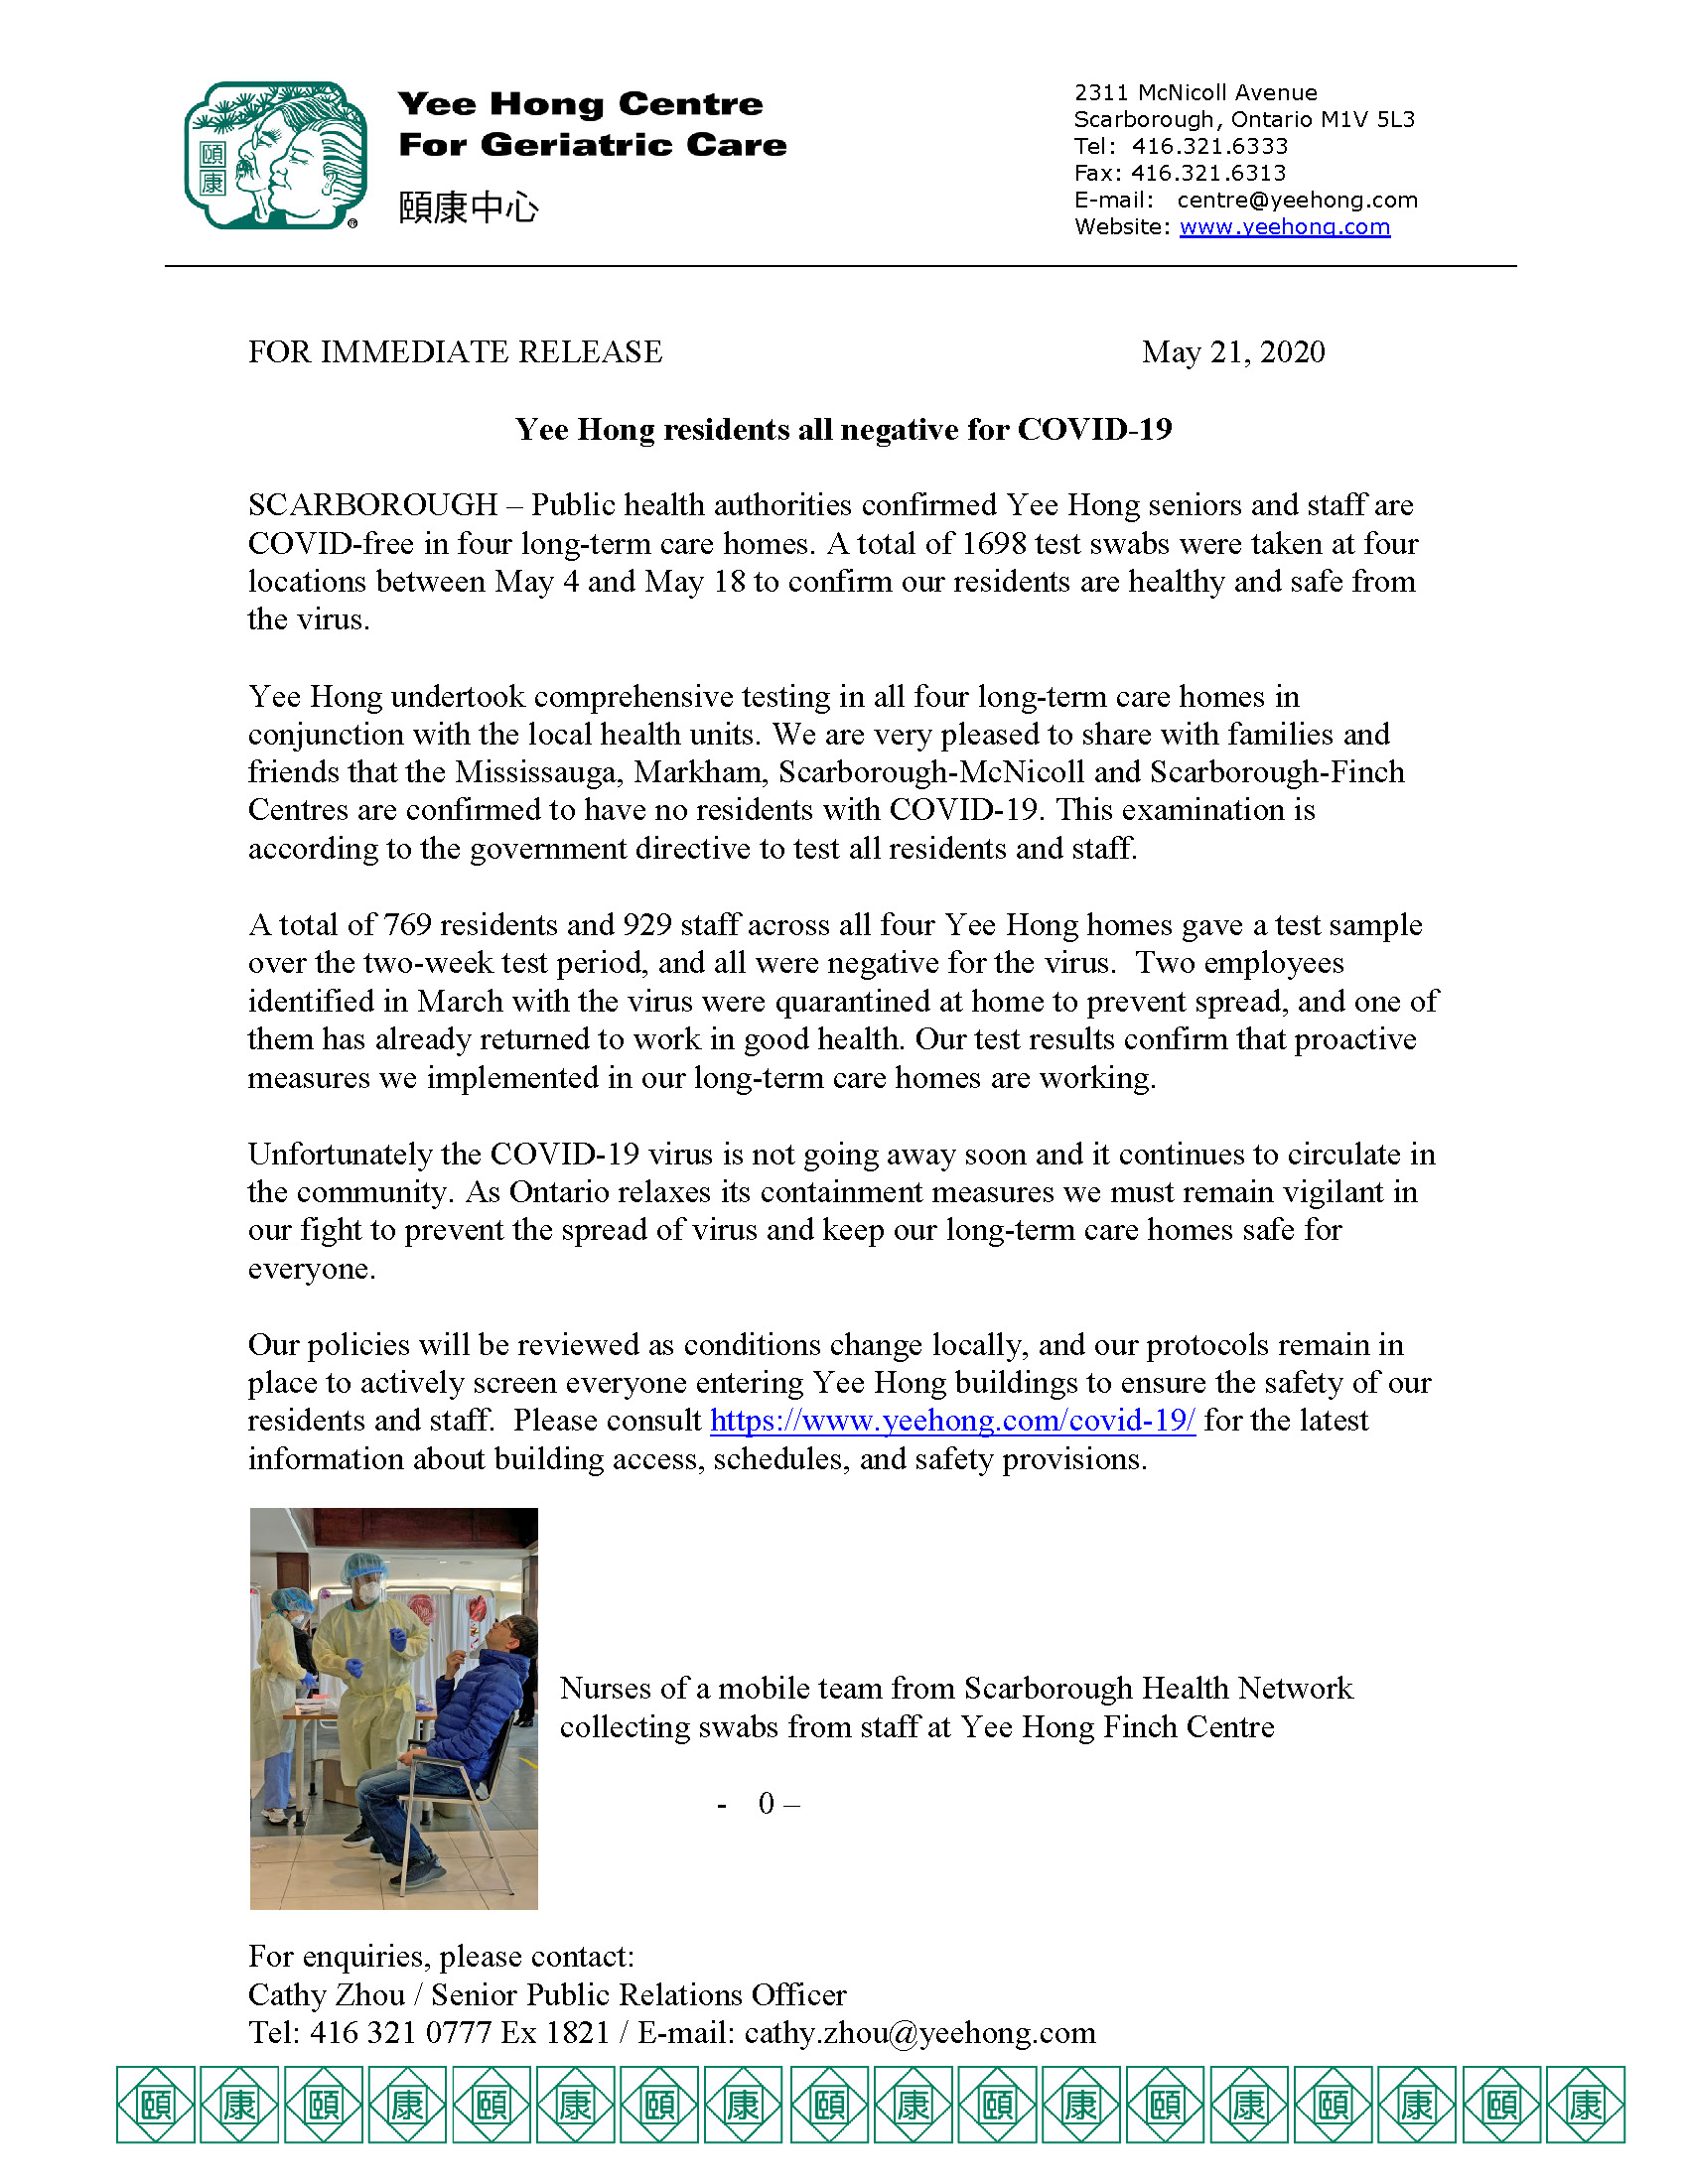 News Release May 21, 2020